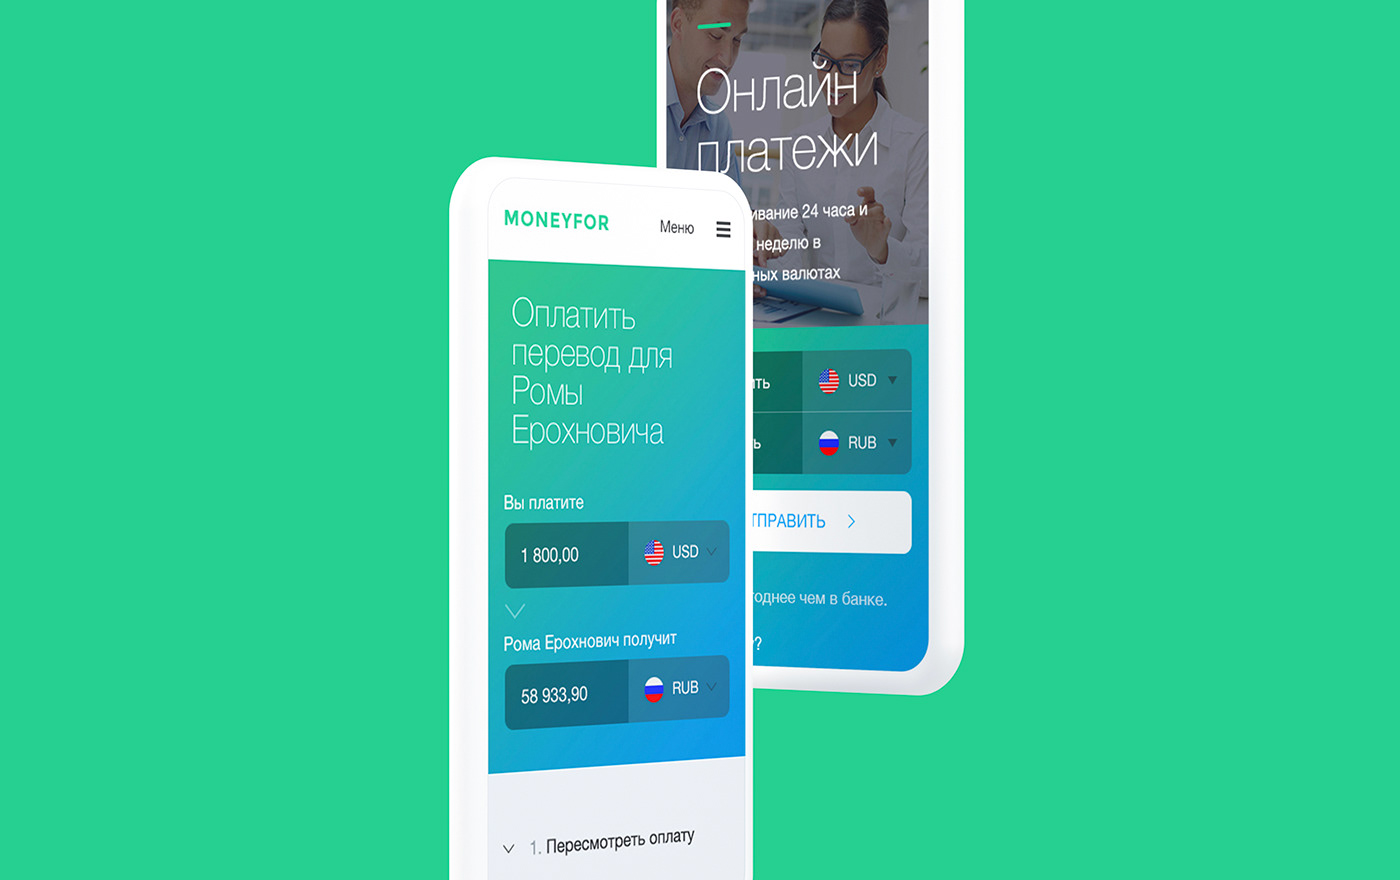 admin panel application Bitcoin Wallet  blockchain exchanging financial payment trading platform Transactions user-friendly